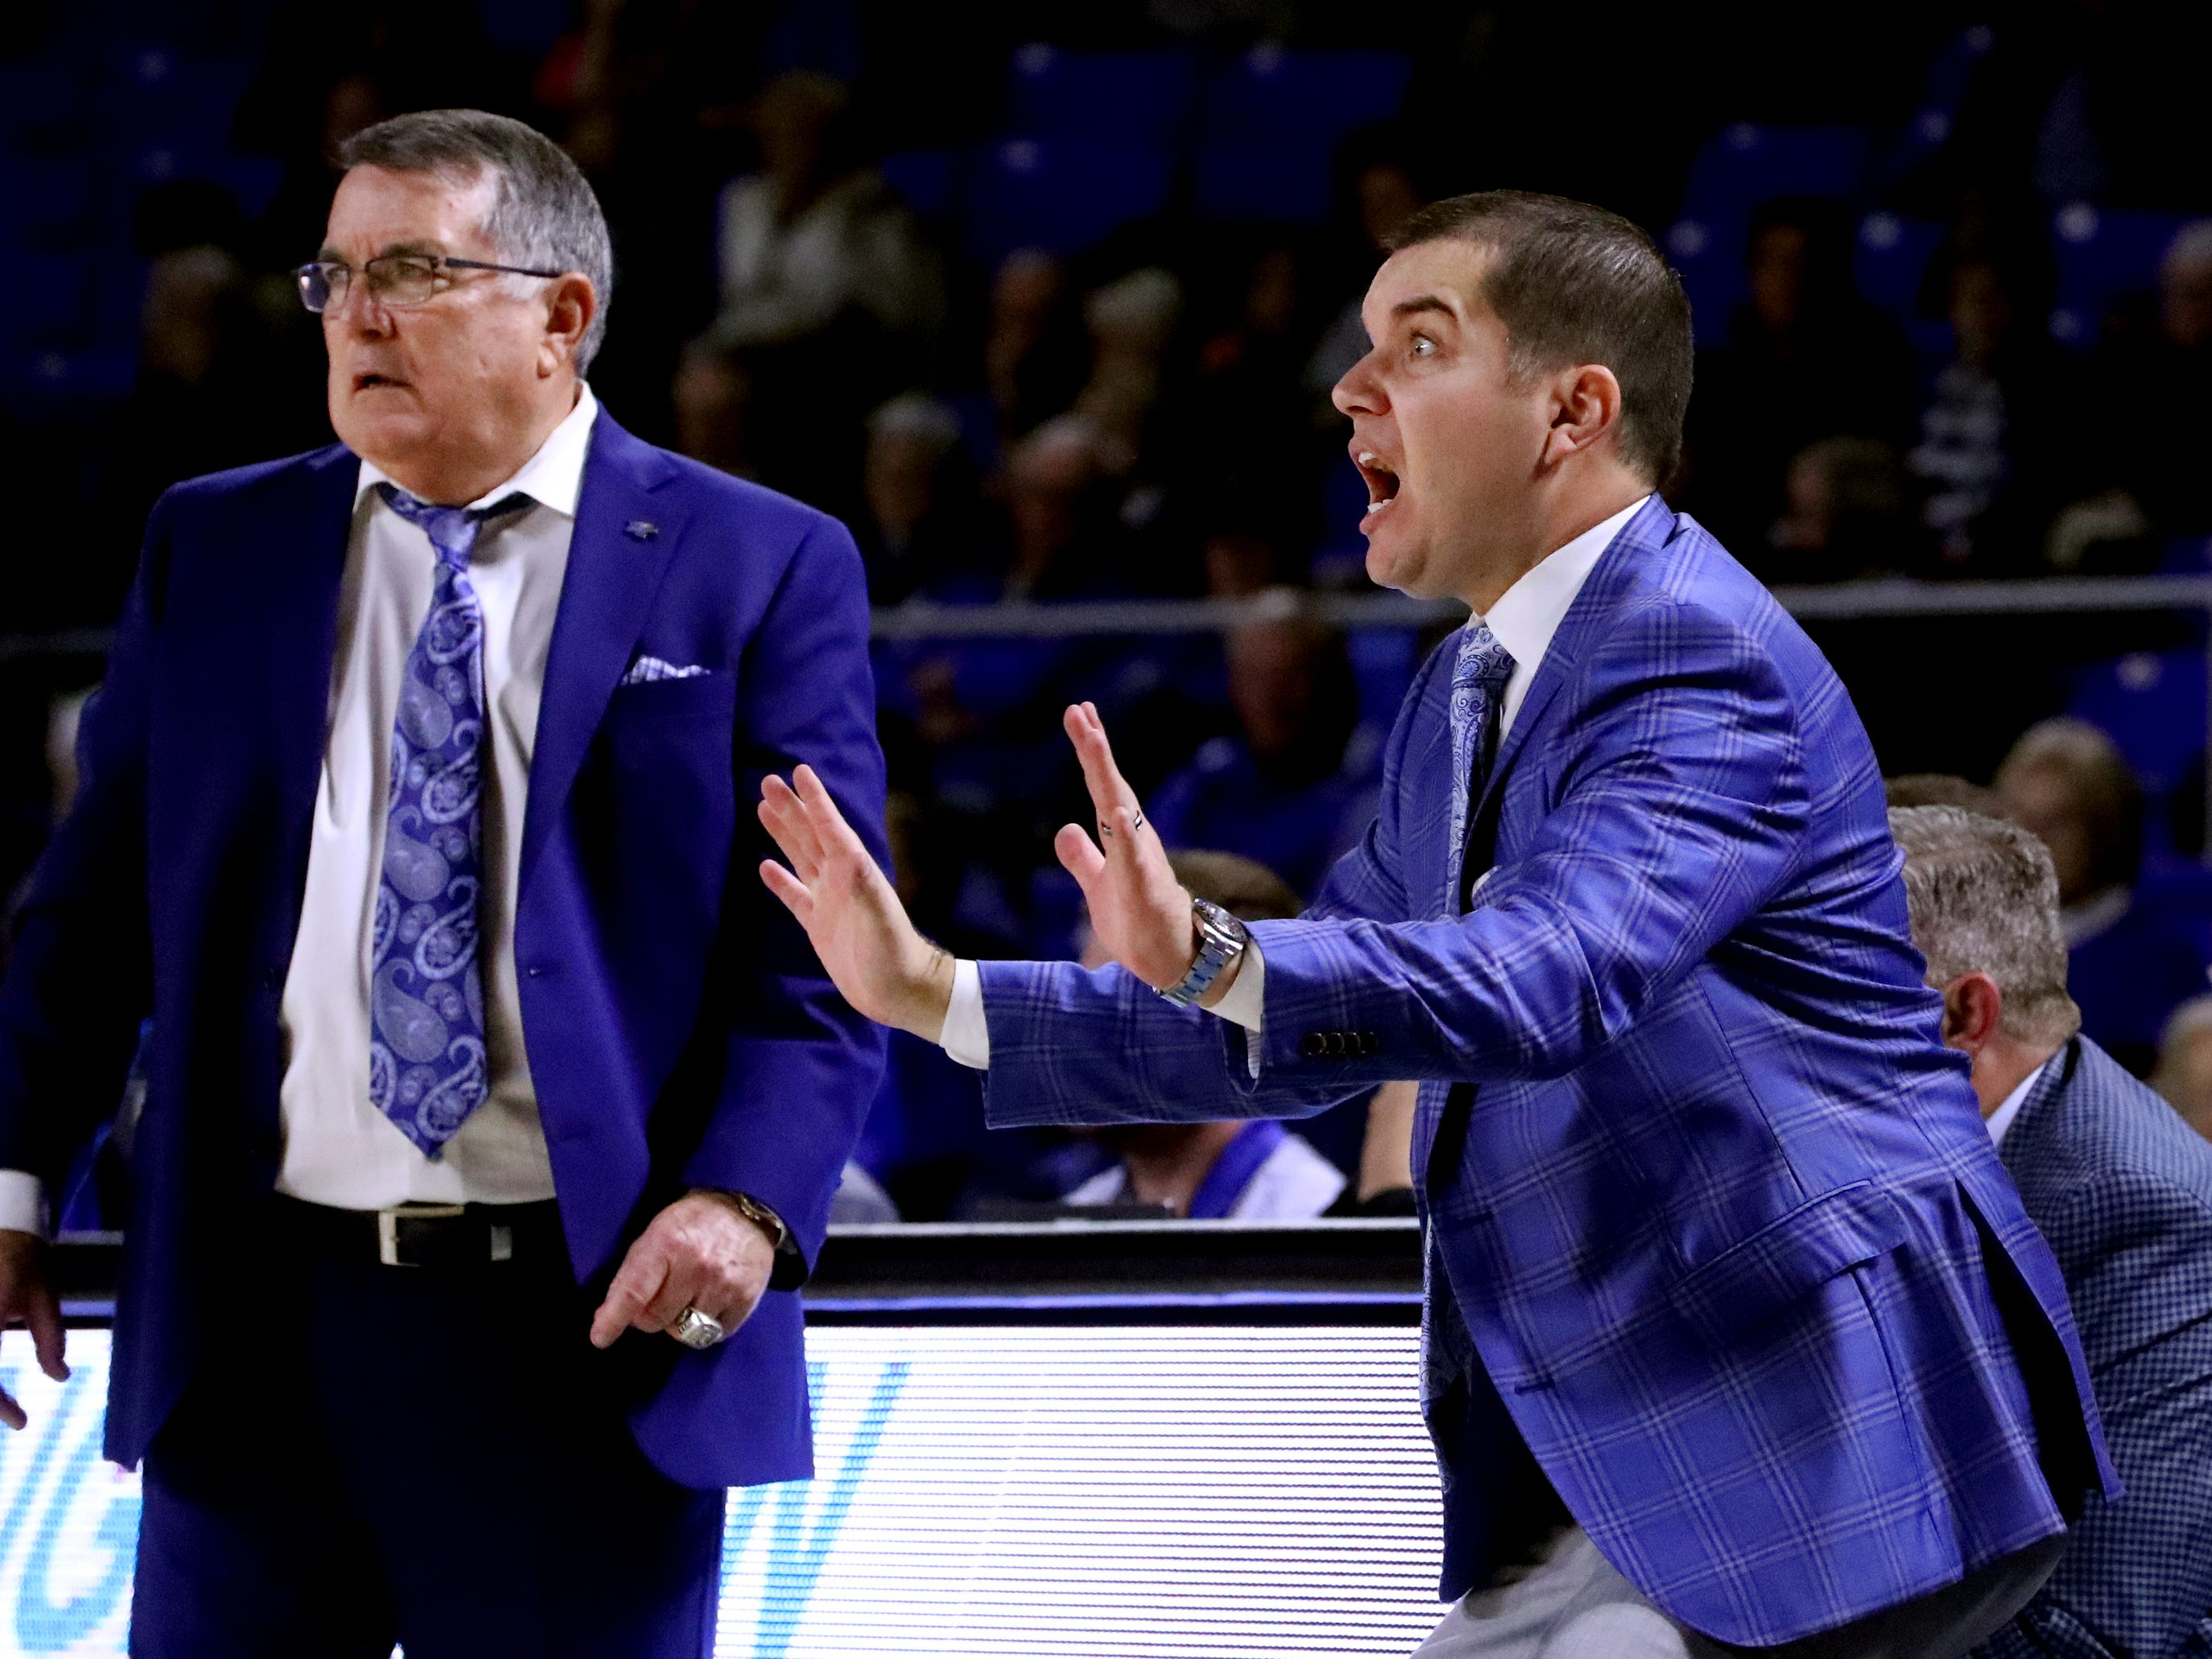 MTSU's head basketball coach Rick Insell, left and assistant MTSU basketball coach Matt Insell on the sidelines during the game against Vanderbilt during MTSU women's home opening game at MTSU on Friday, Nov. 8, 2018.